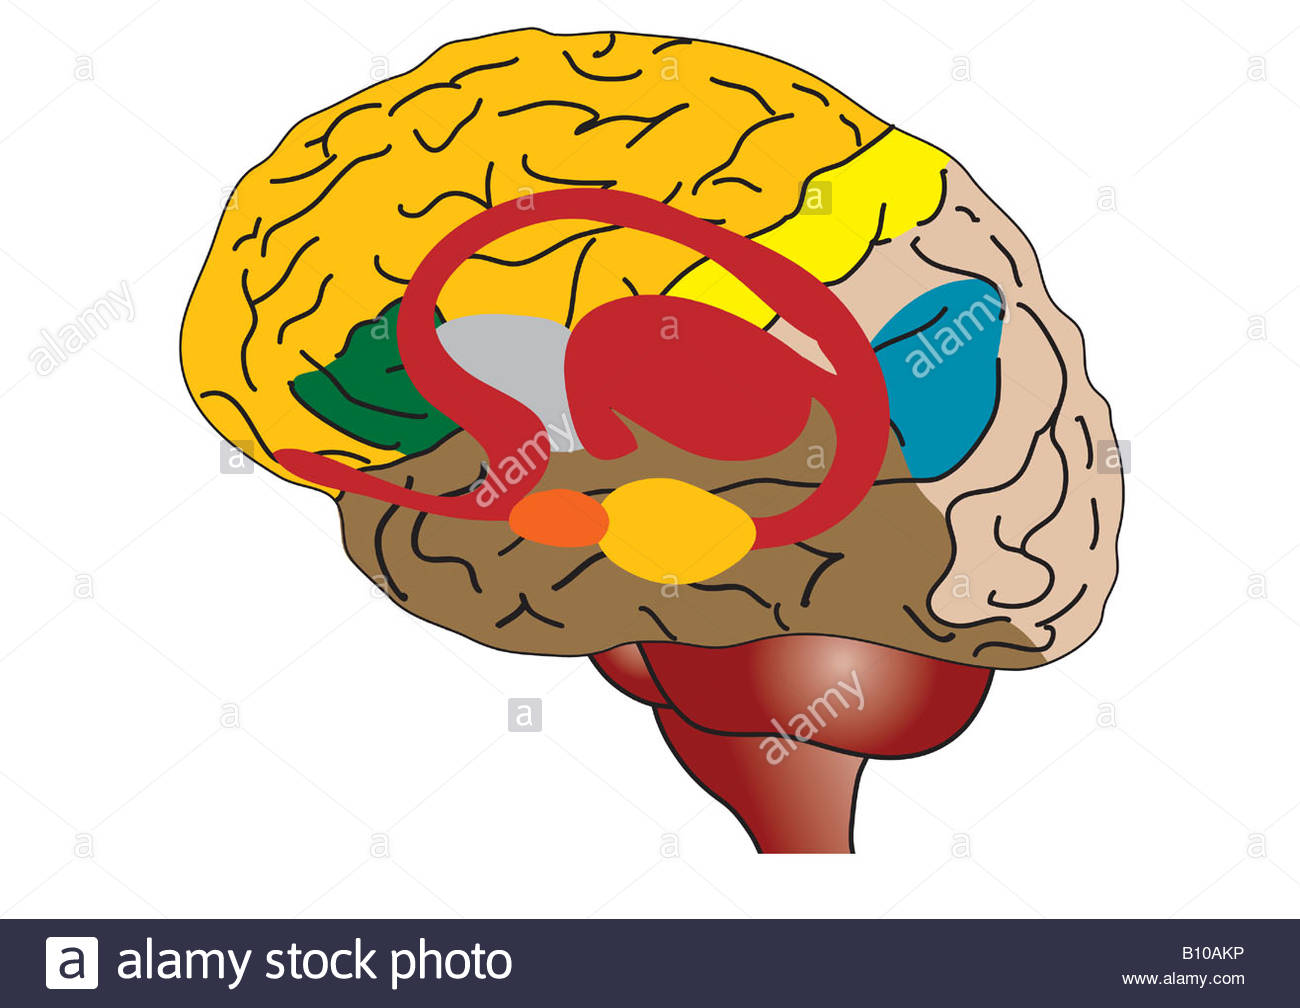 Brain Structures Stock Photos Brain Structures Stock Images Alamy